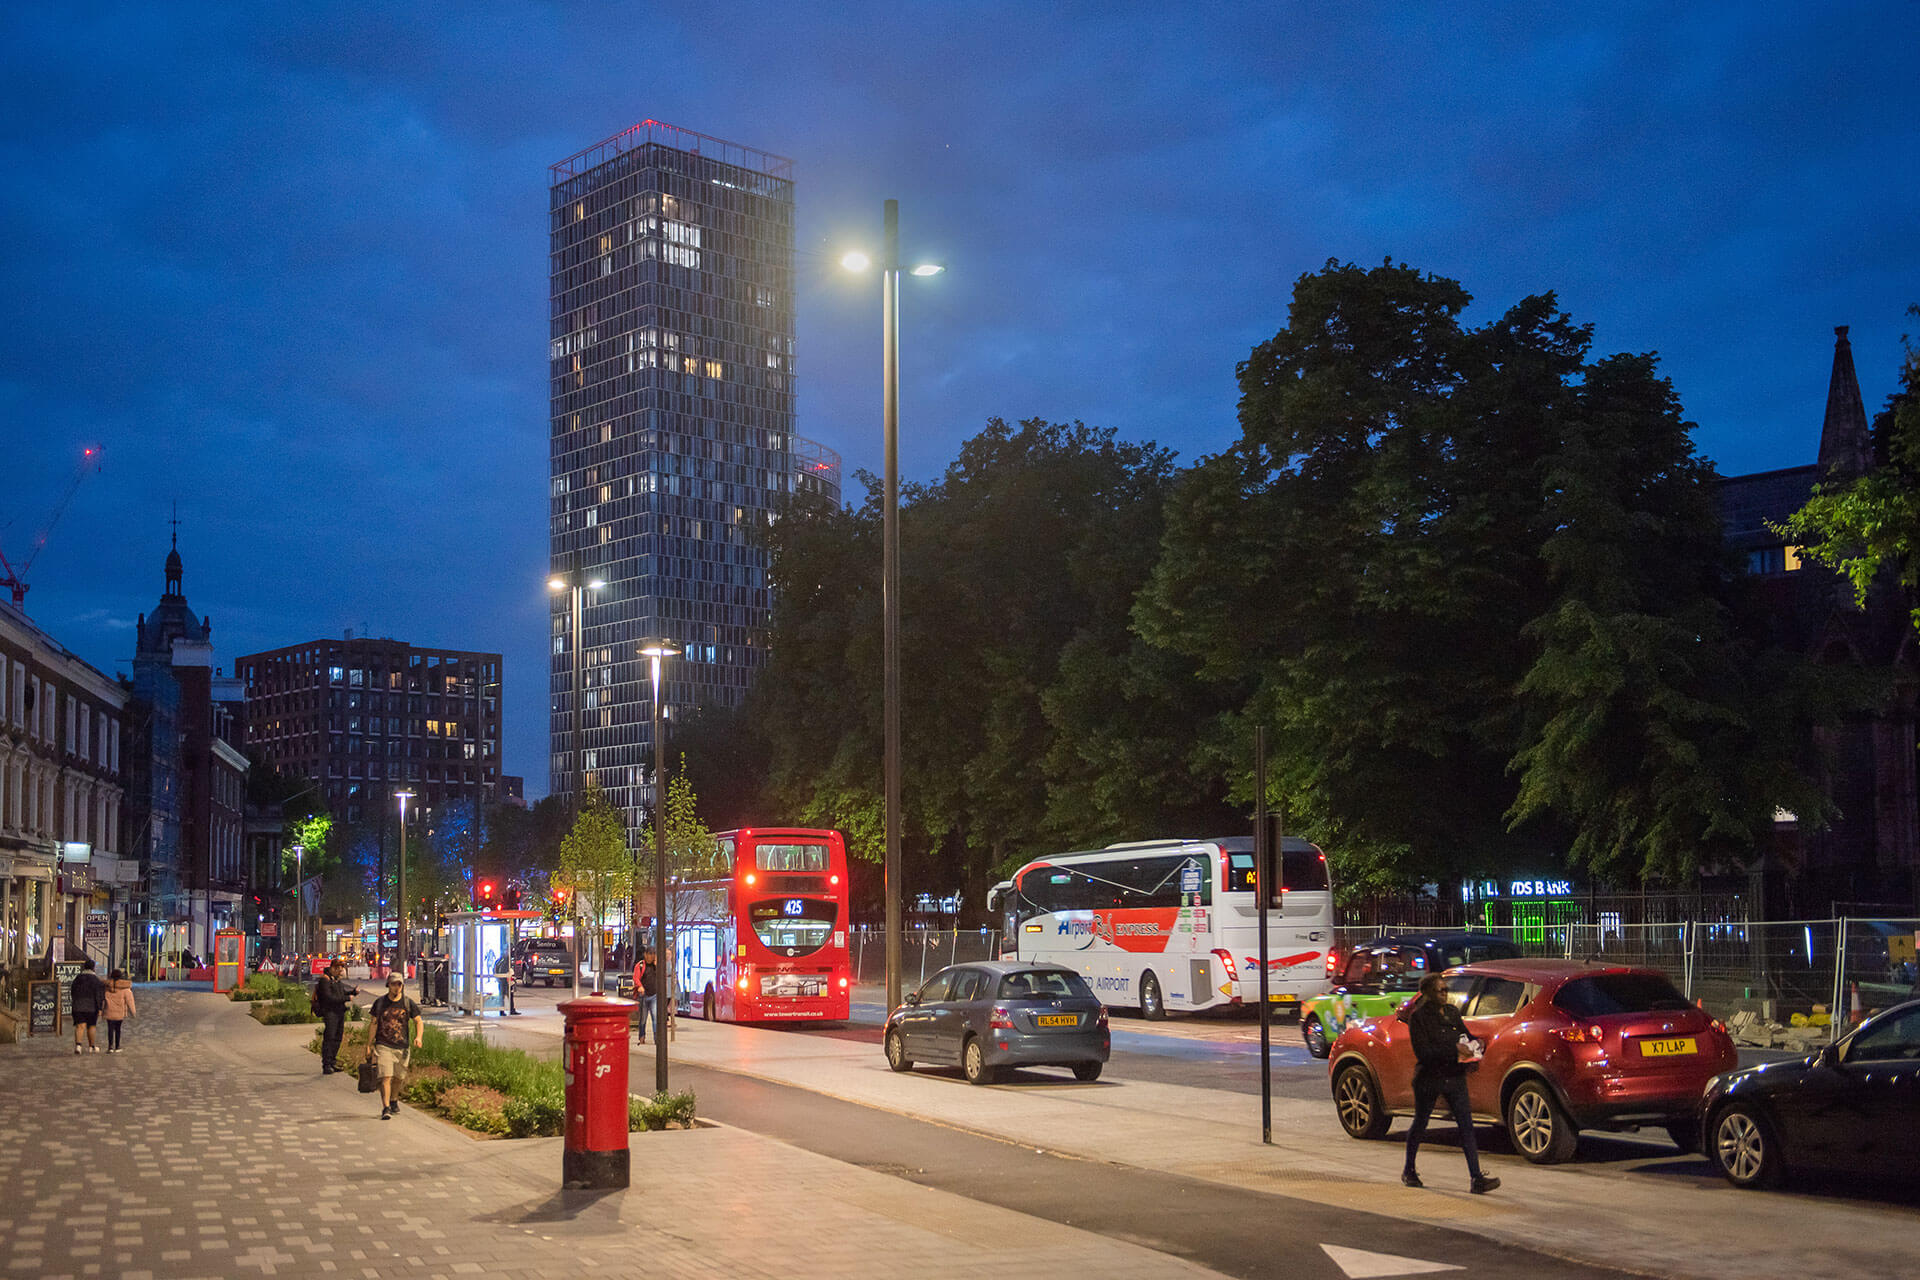 Yoa provides high-performing lighting network worthy of Stratford councils' investment